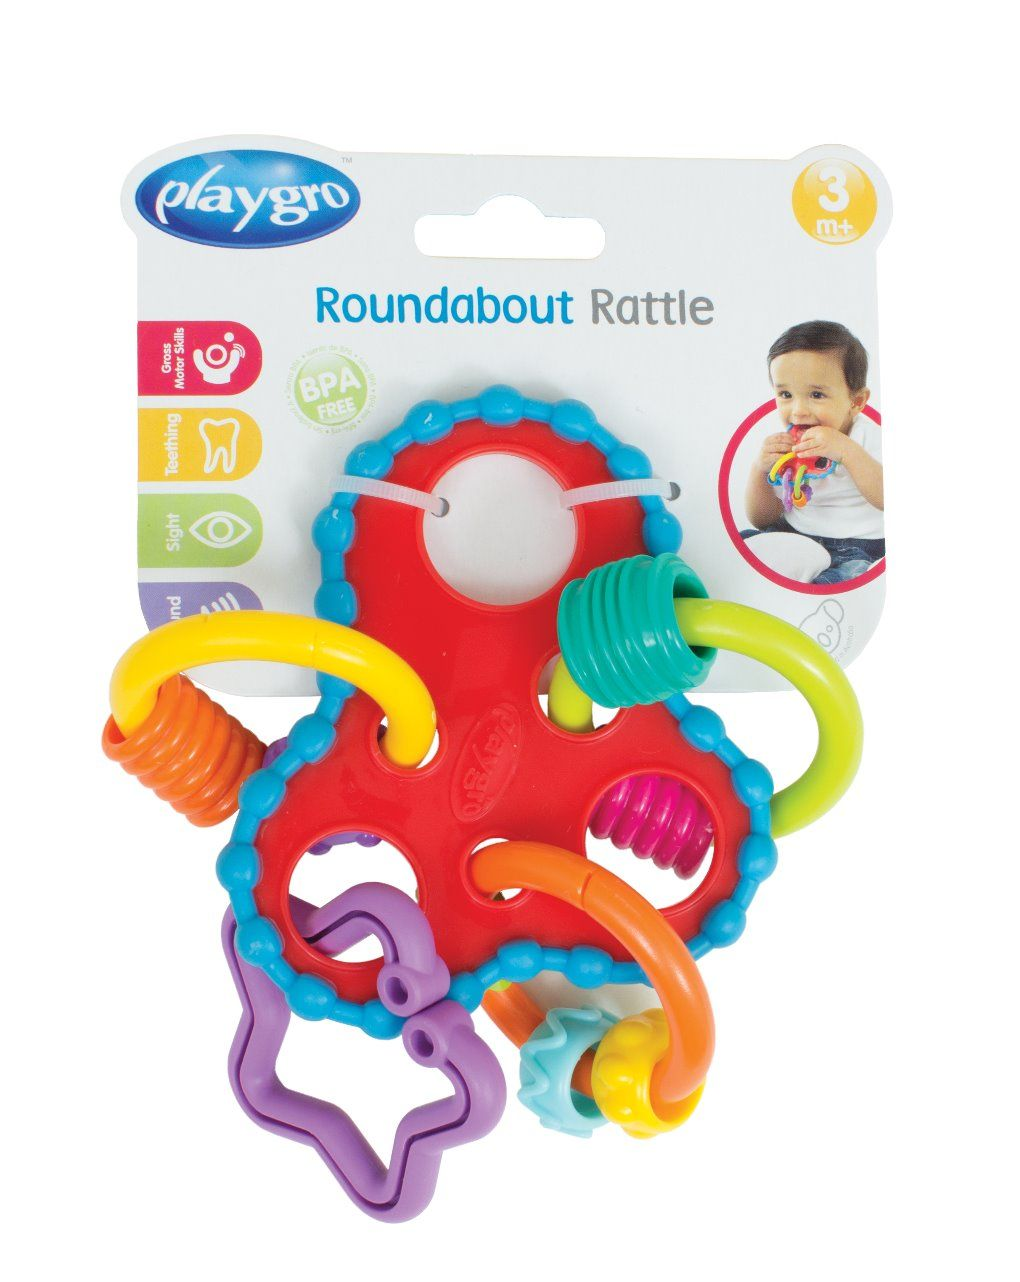 Playgro - roundabout rattle - Playgro